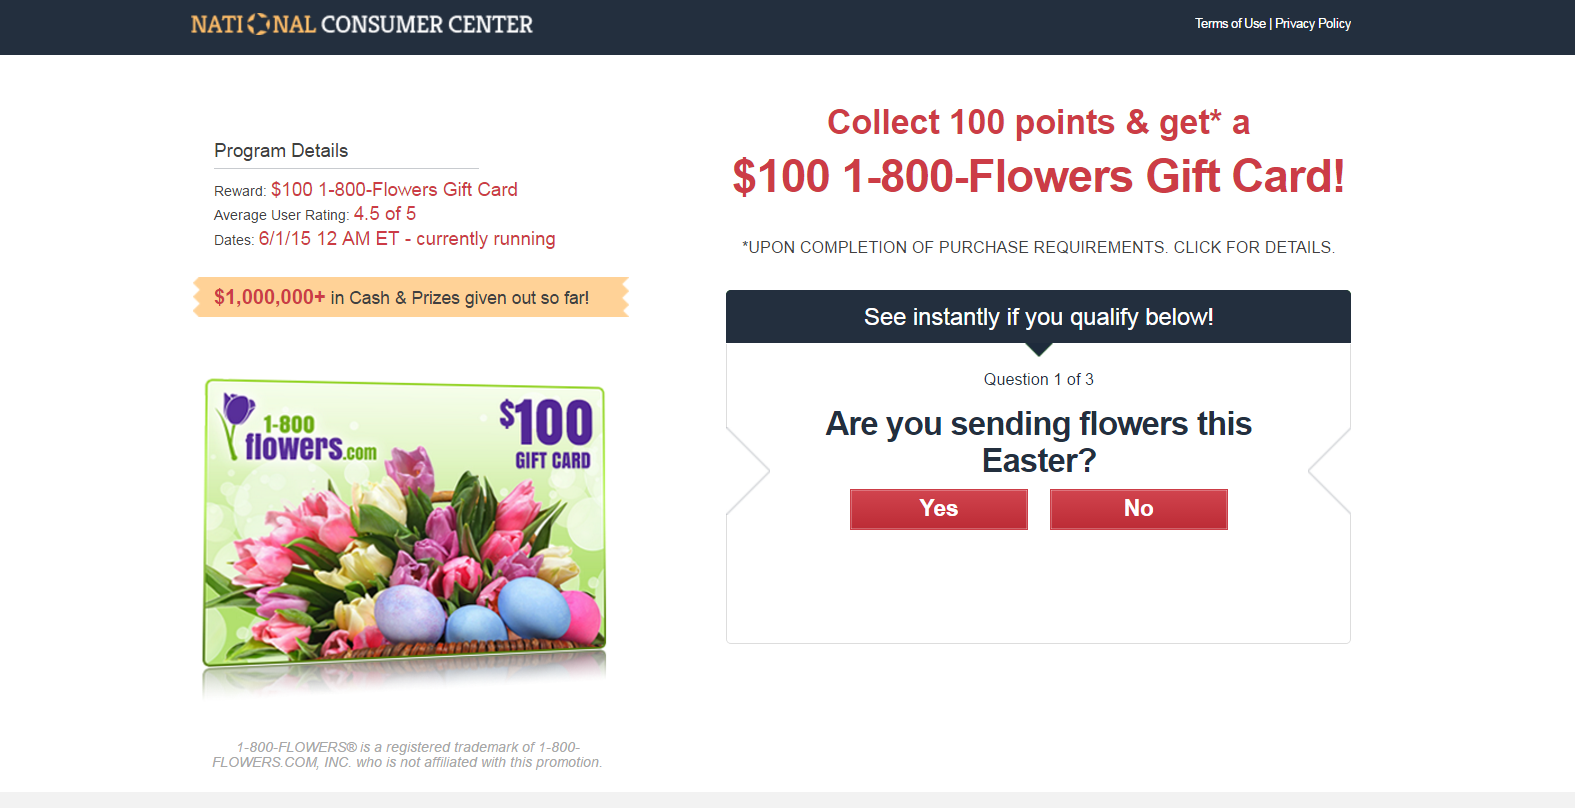 Get a Credit up to $100 at 1-800 Flowers!